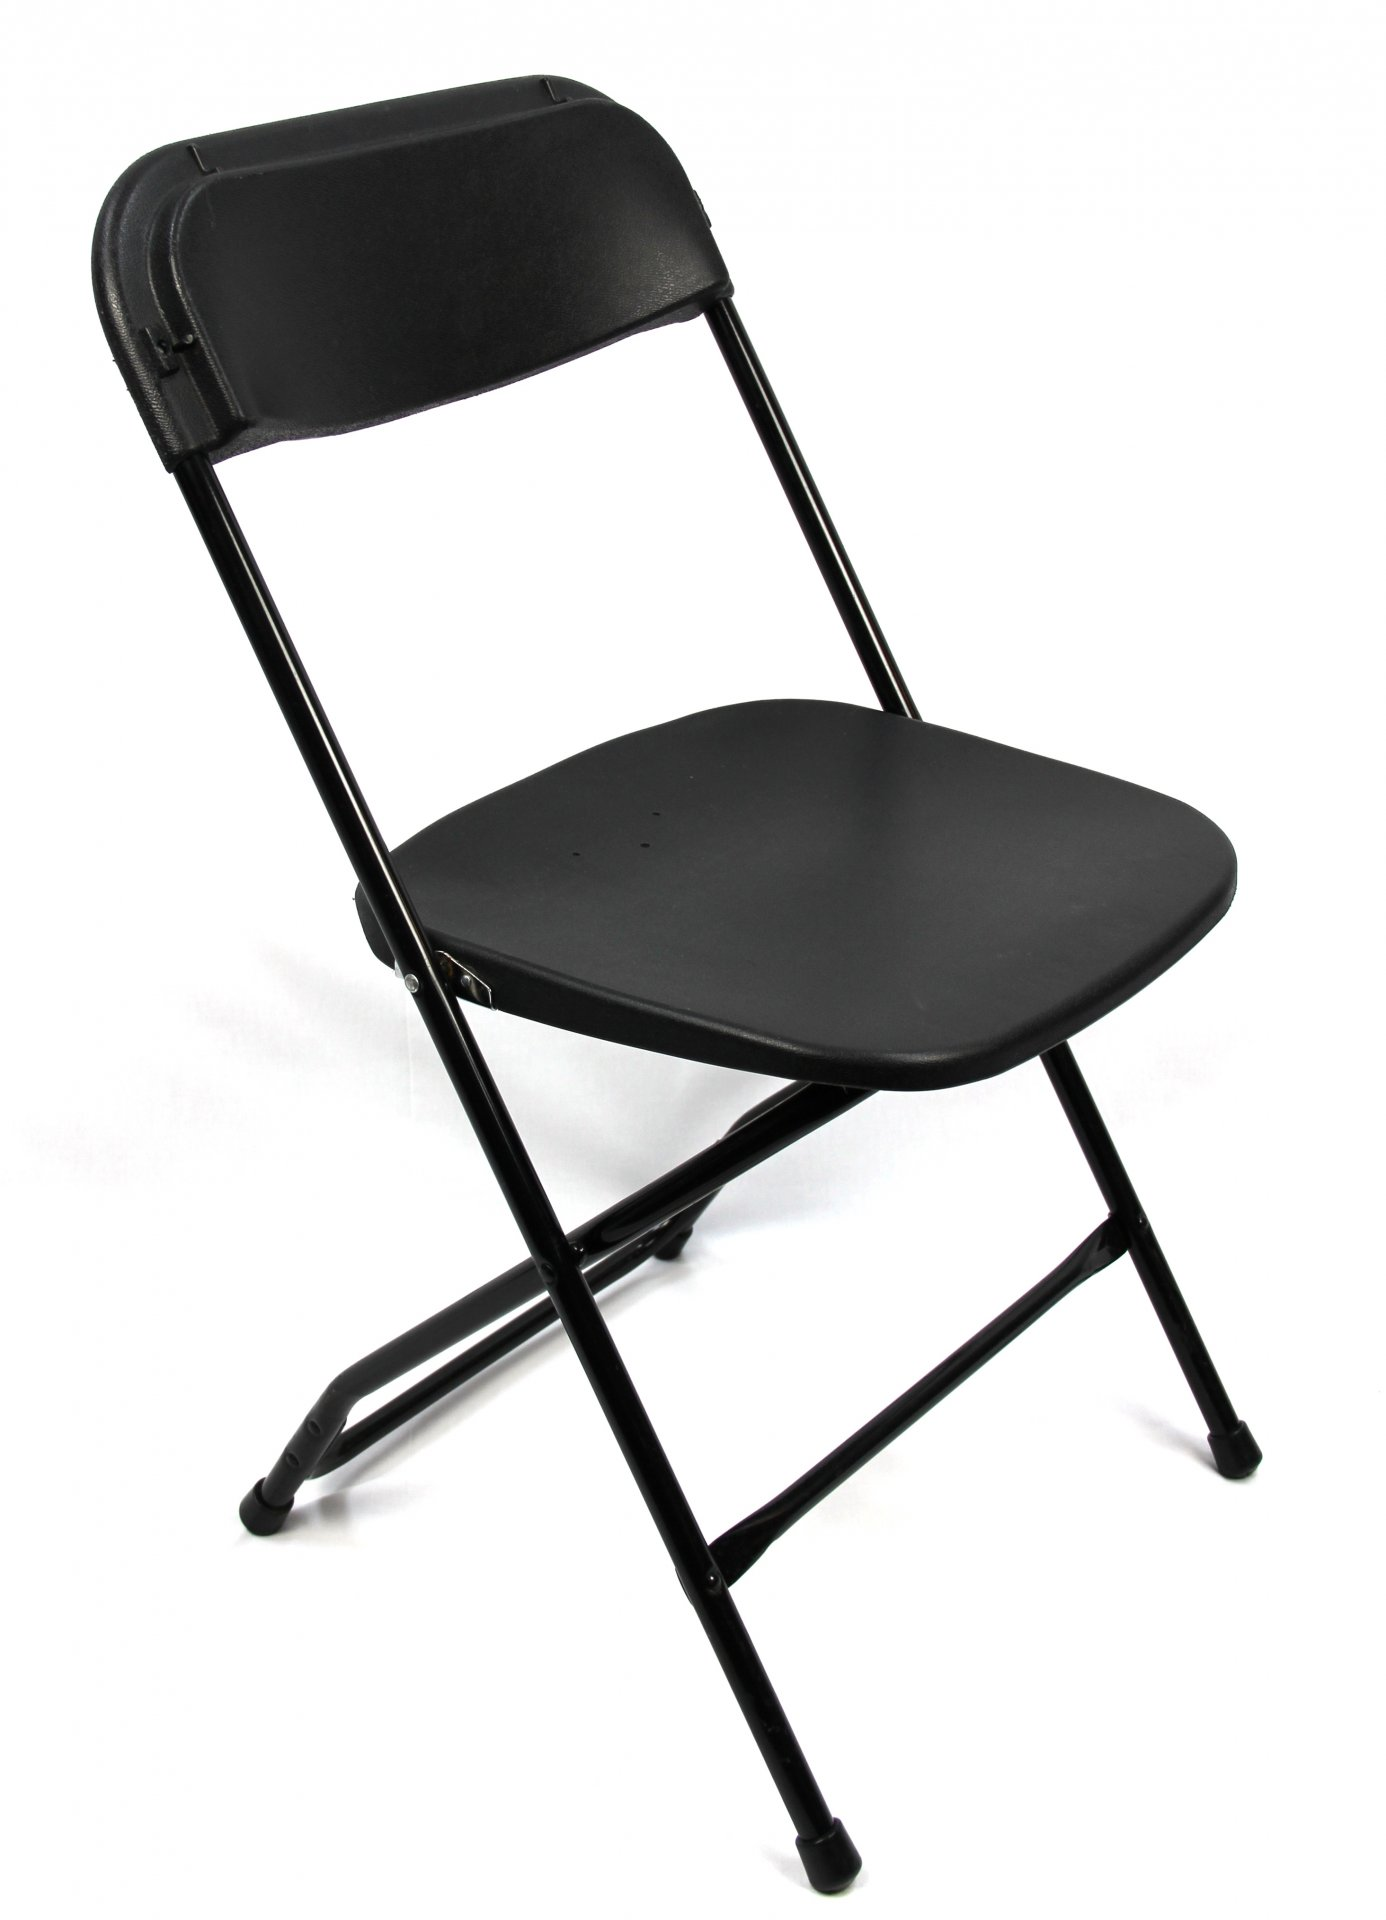 Black Folding Chair